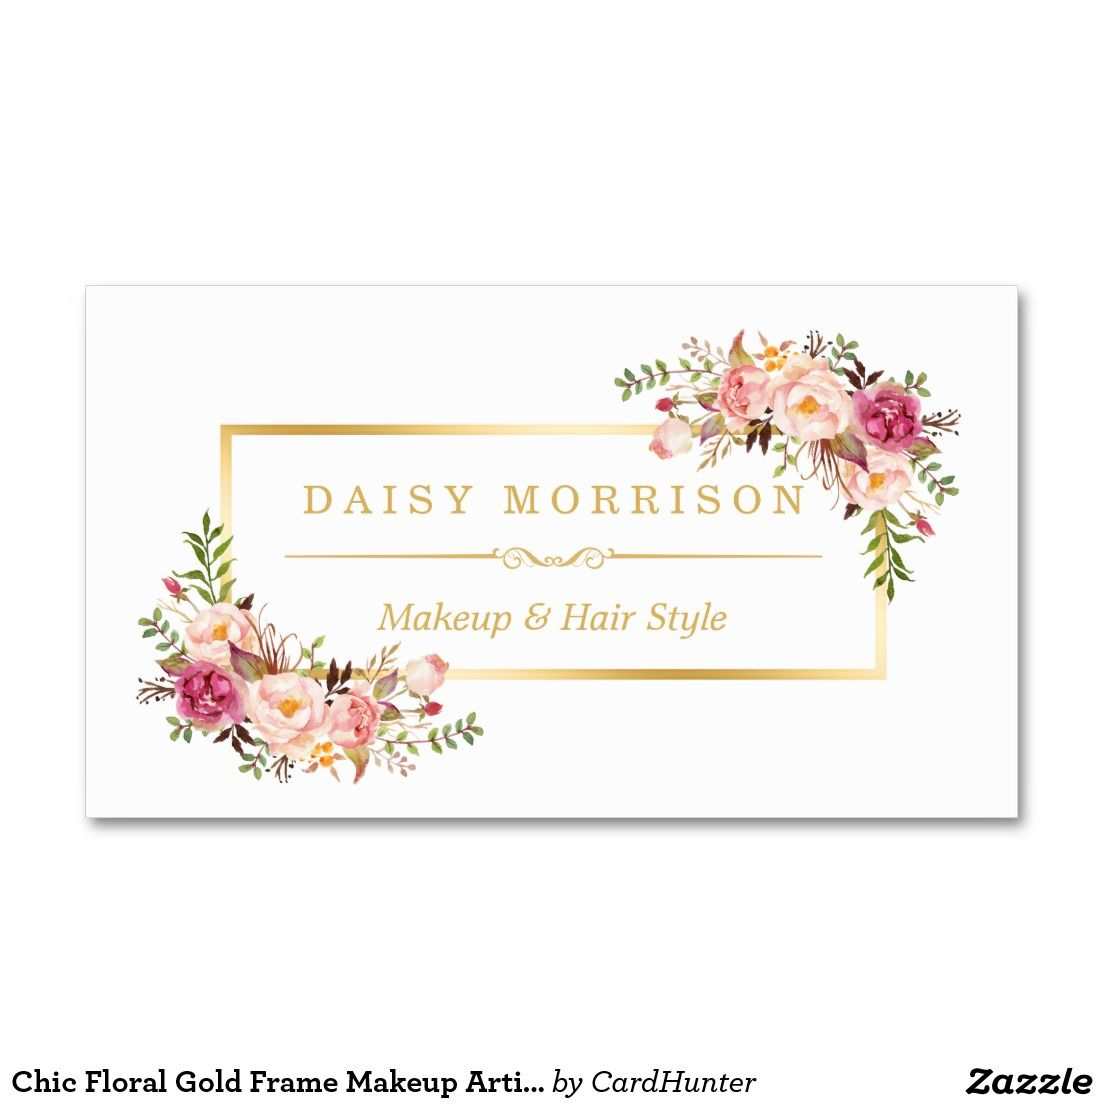 Chic Floral Gold Frame Makeup Artist Beauty Salon Business Card | My ...